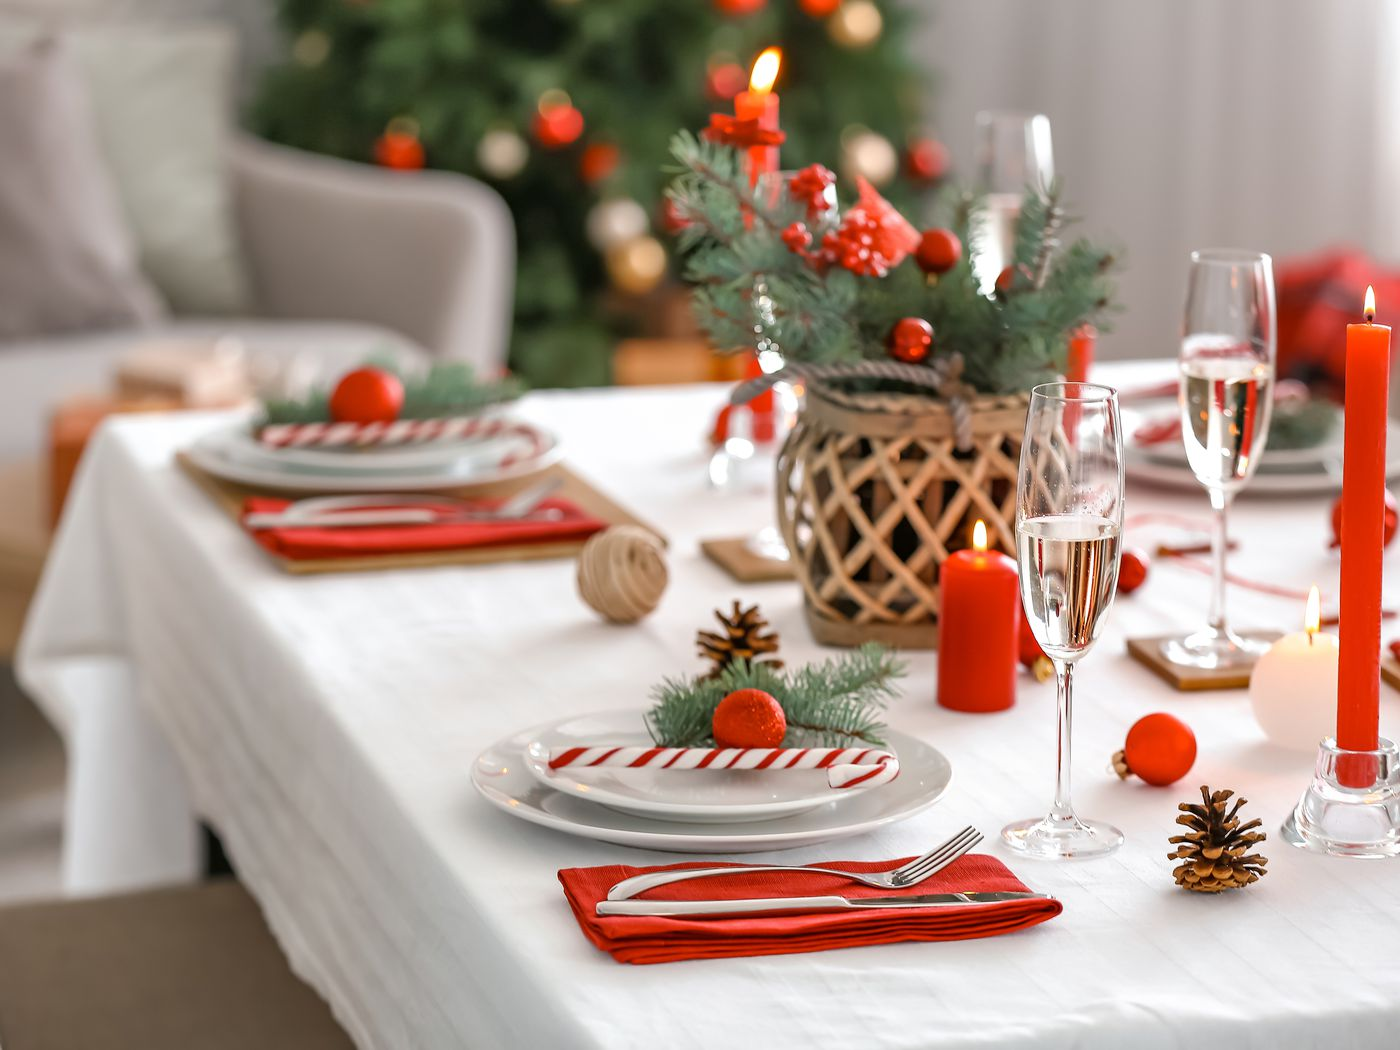 Chicago Christmas Dinner 2021 Chicago Area Restaurants Take Home Delivery Christmas New Year S Meal Offerings For Holiday Dinners Chicago Sun Times